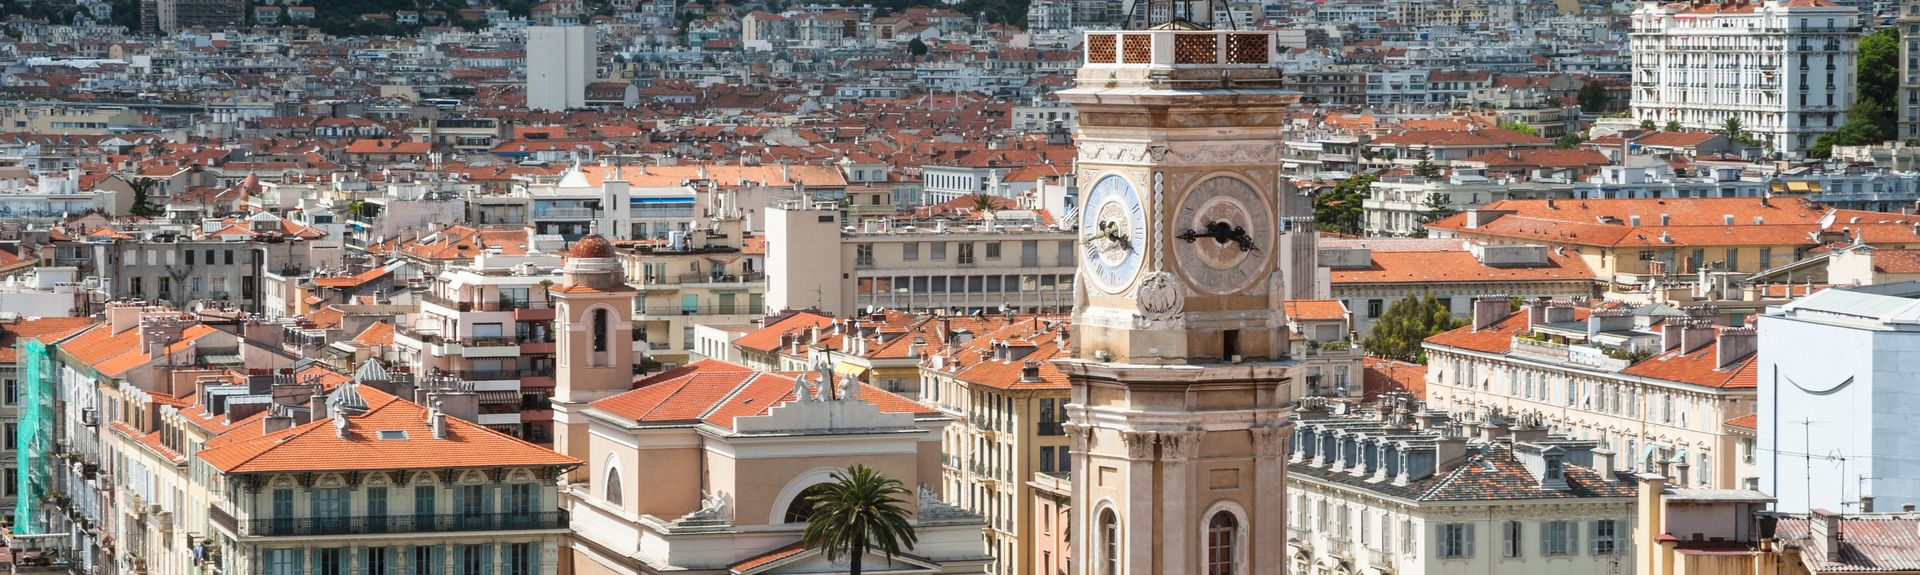 Old Town, Nice, Alpes-Maritimes, France